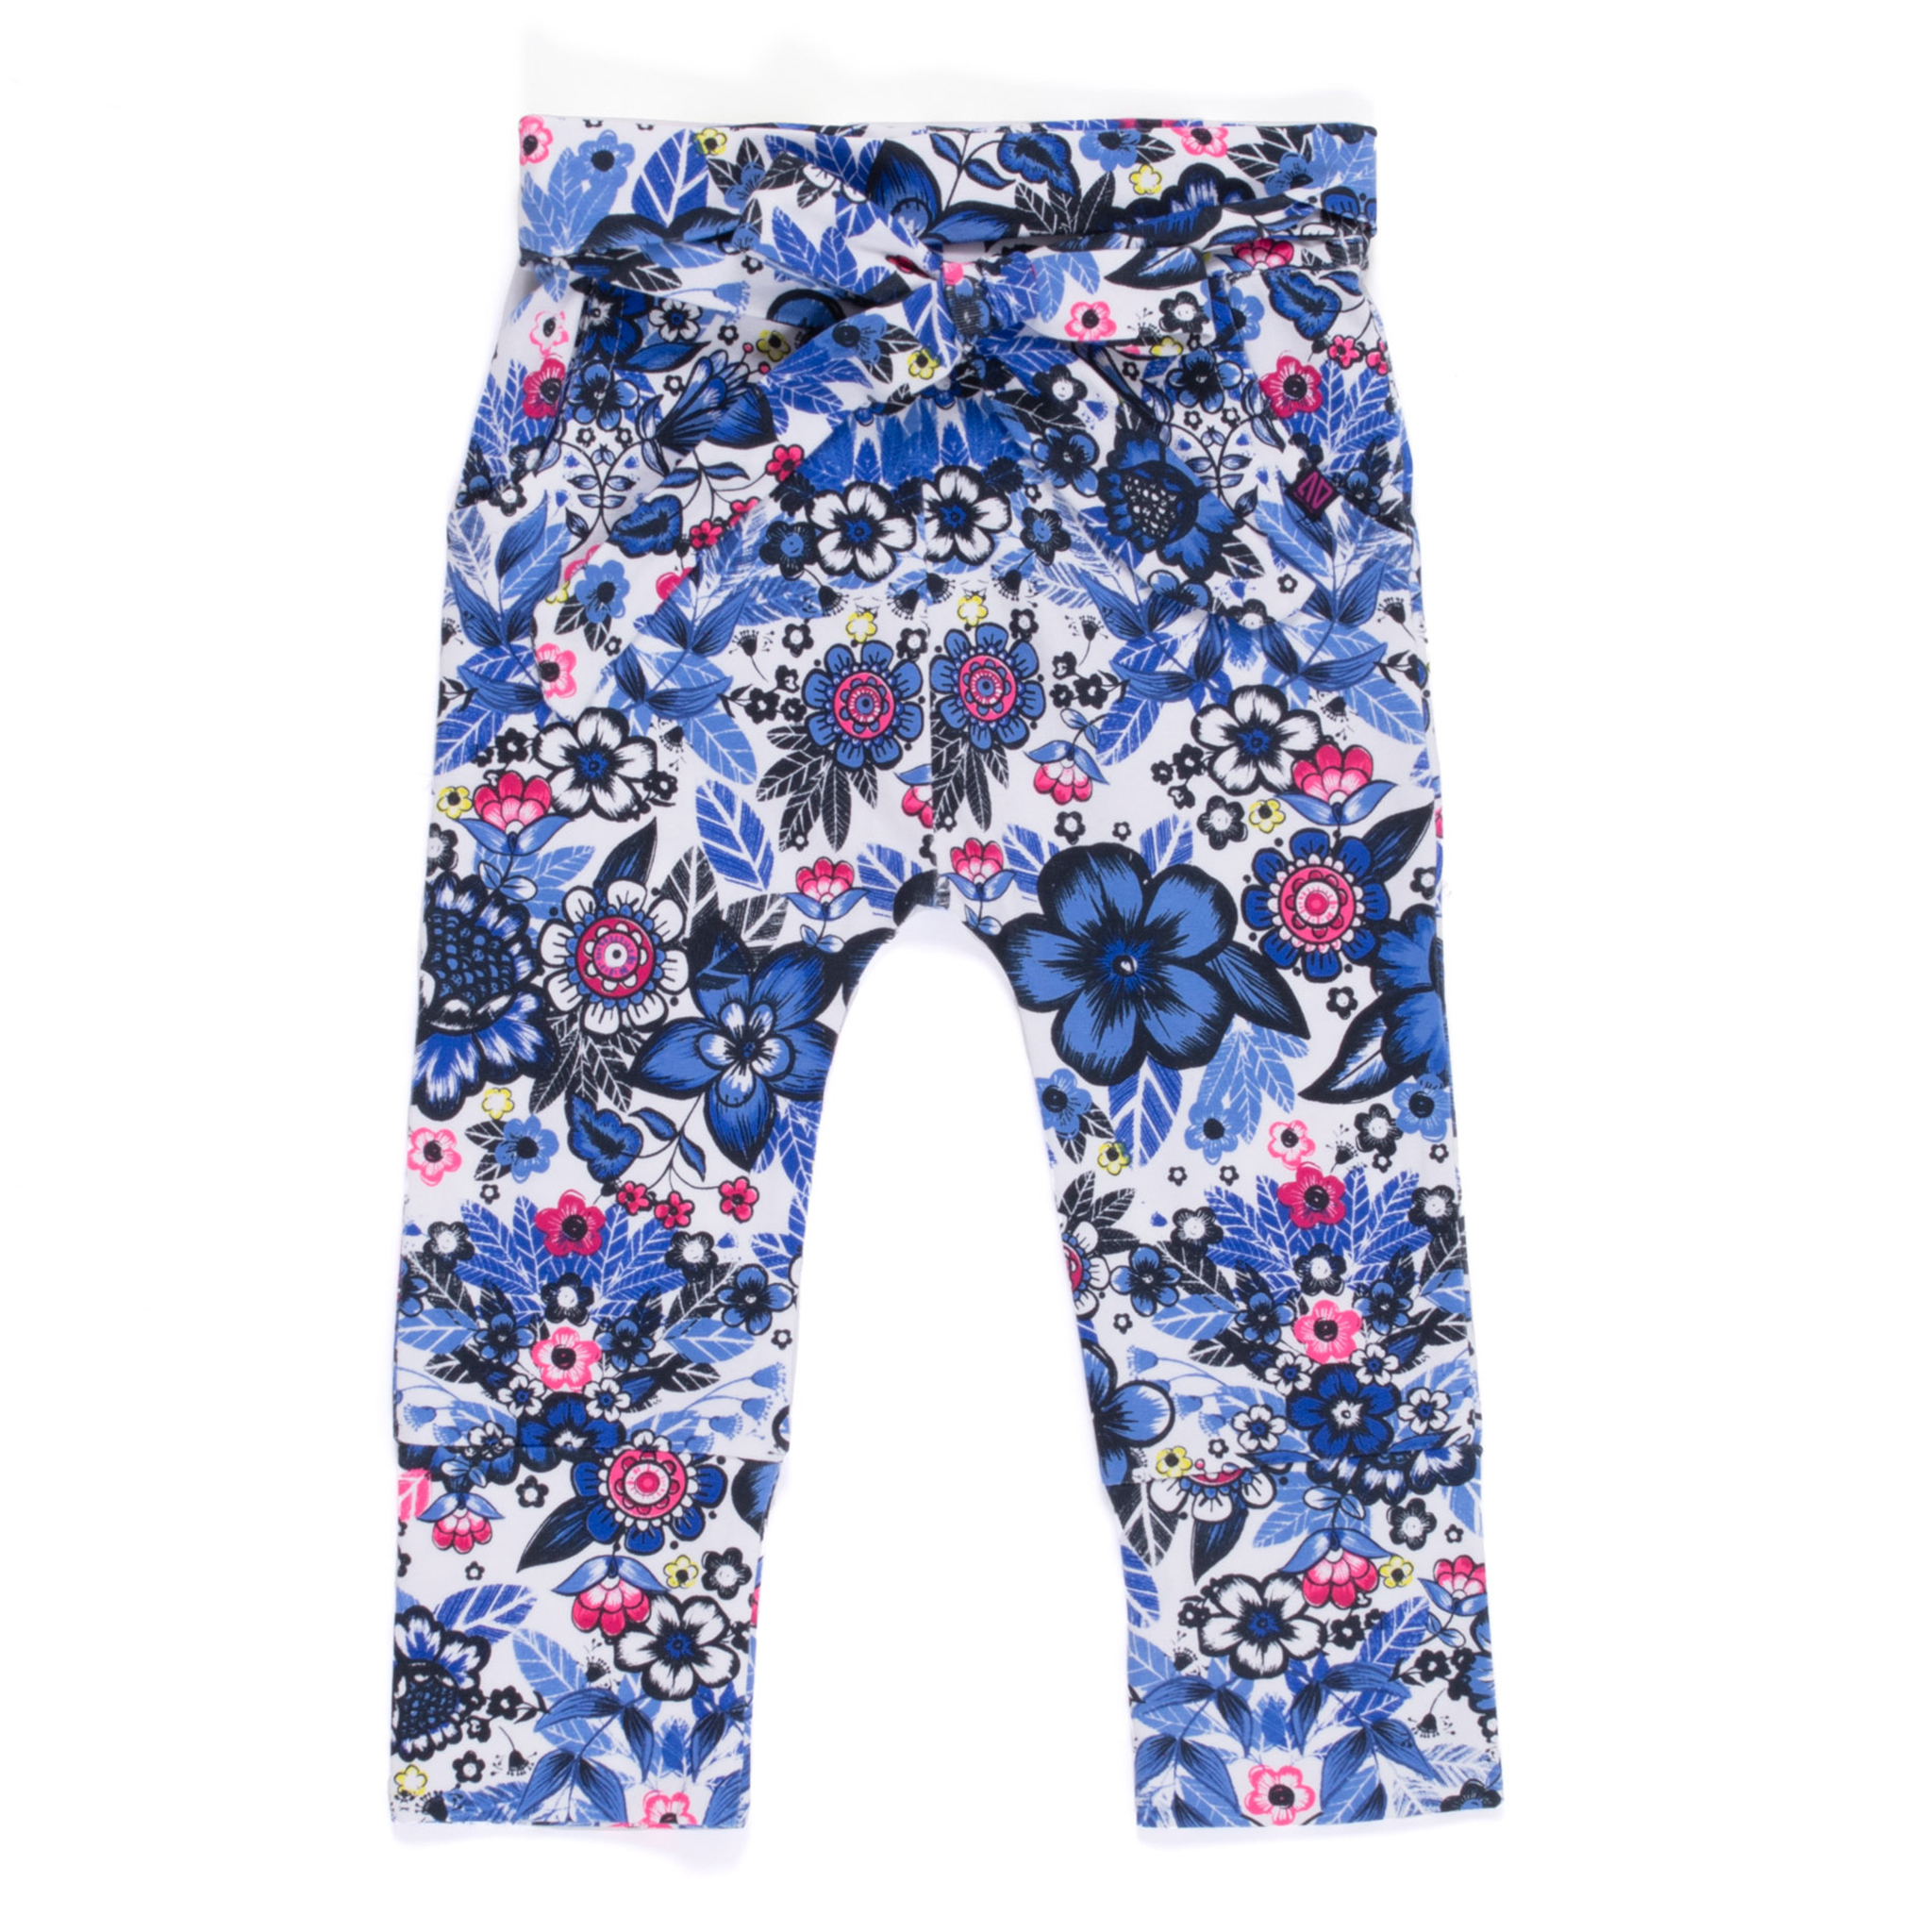 Grow with me pants - Blue - Girls